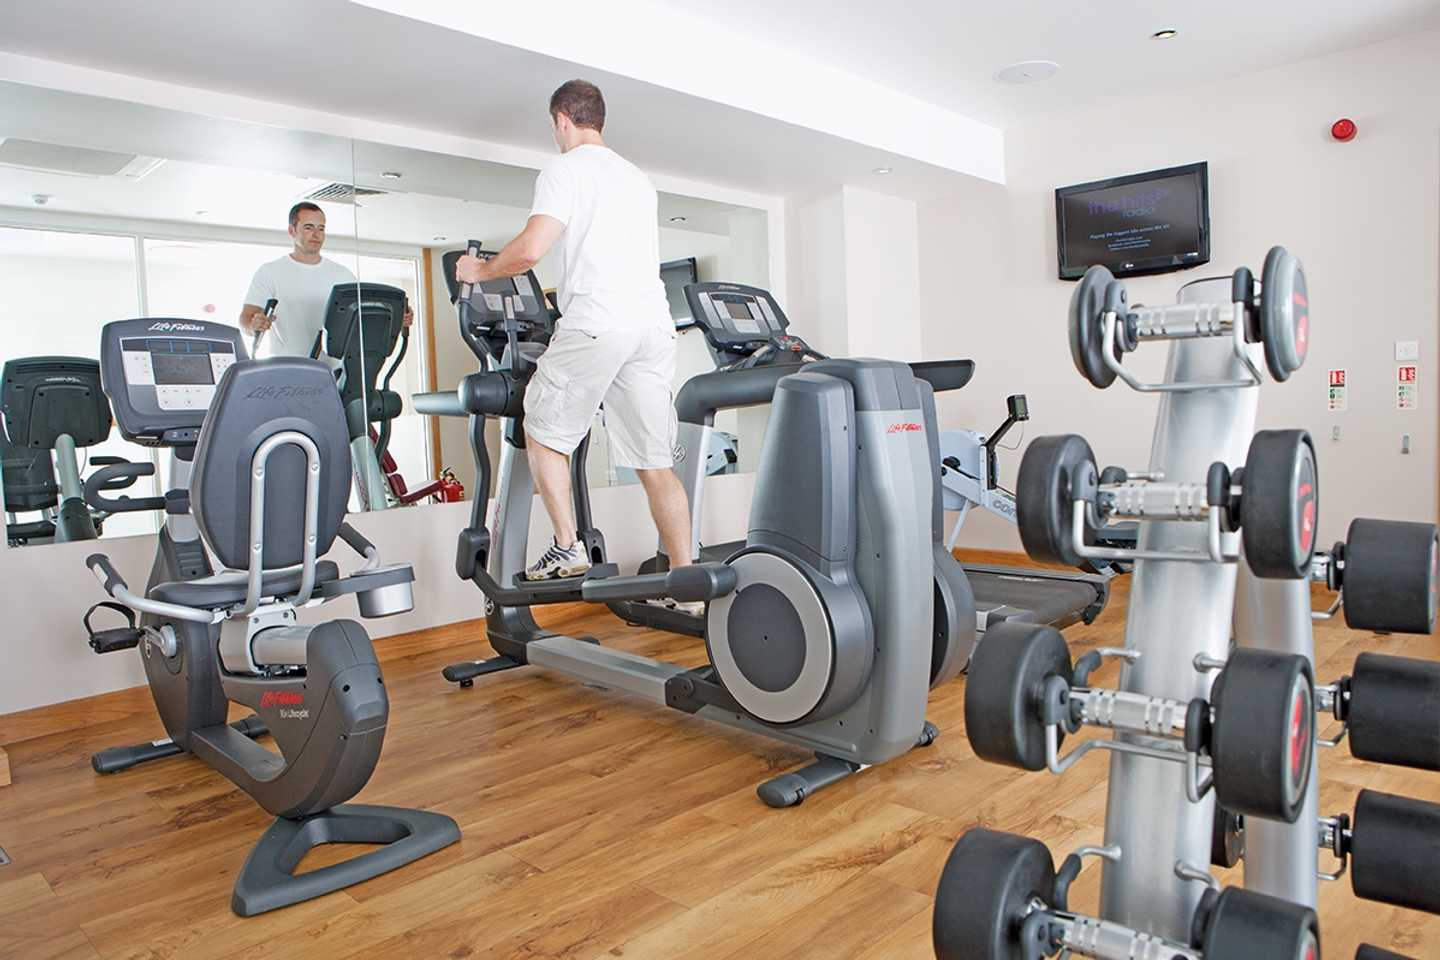 A man working out on the cross-trainer in our owners' gym